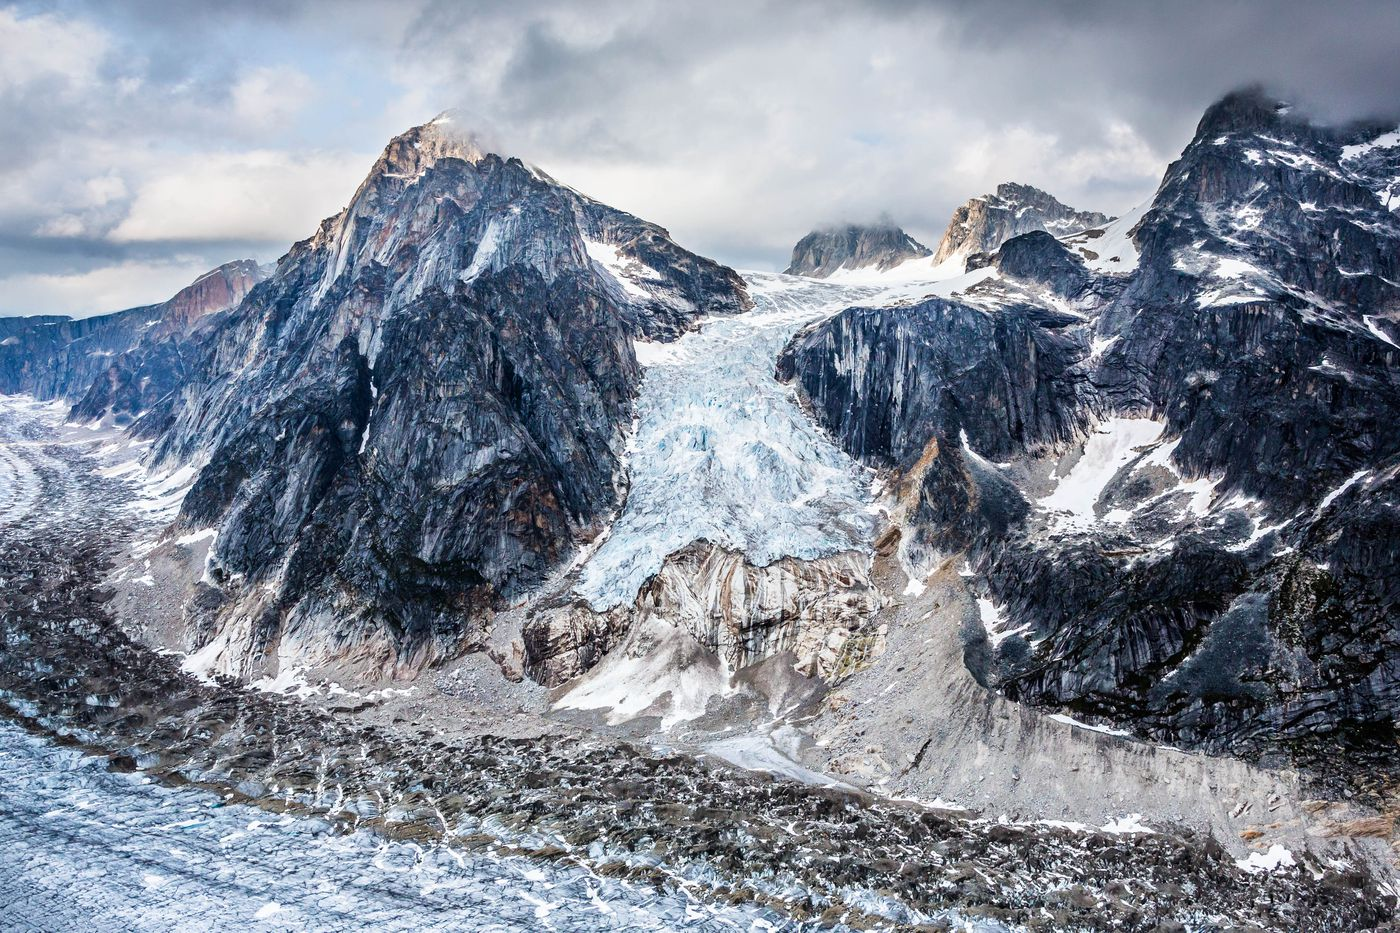 A hanging glacier above the Ruth Glacier, Denali National Park, Alaska on July 19, 2012. Mountain glaciers hold only 1 percent of the world's glacial ice, but they are contributing 30 percent of the water that is increasing sea levels.